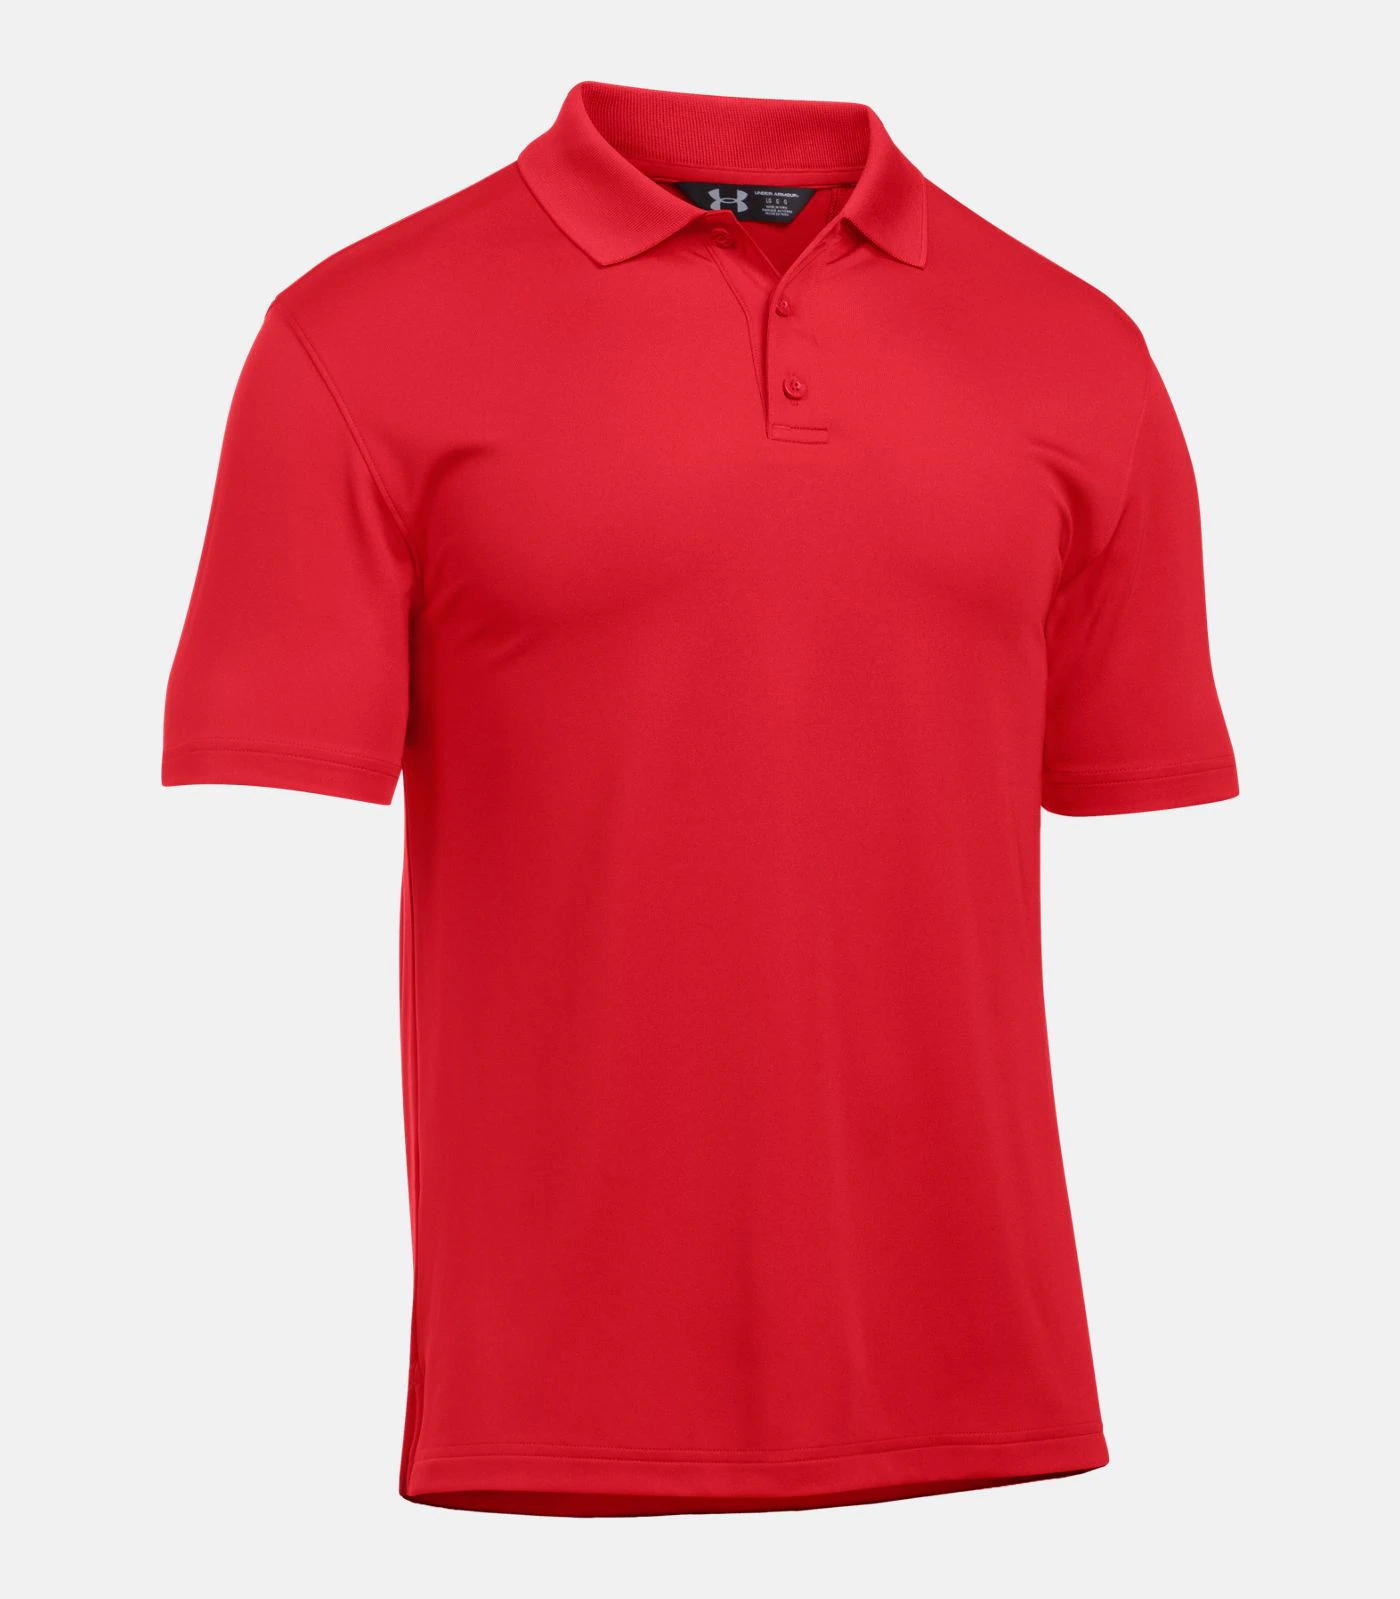 MENS_POLO_TacPerformance-SS_UAR1279759600_07